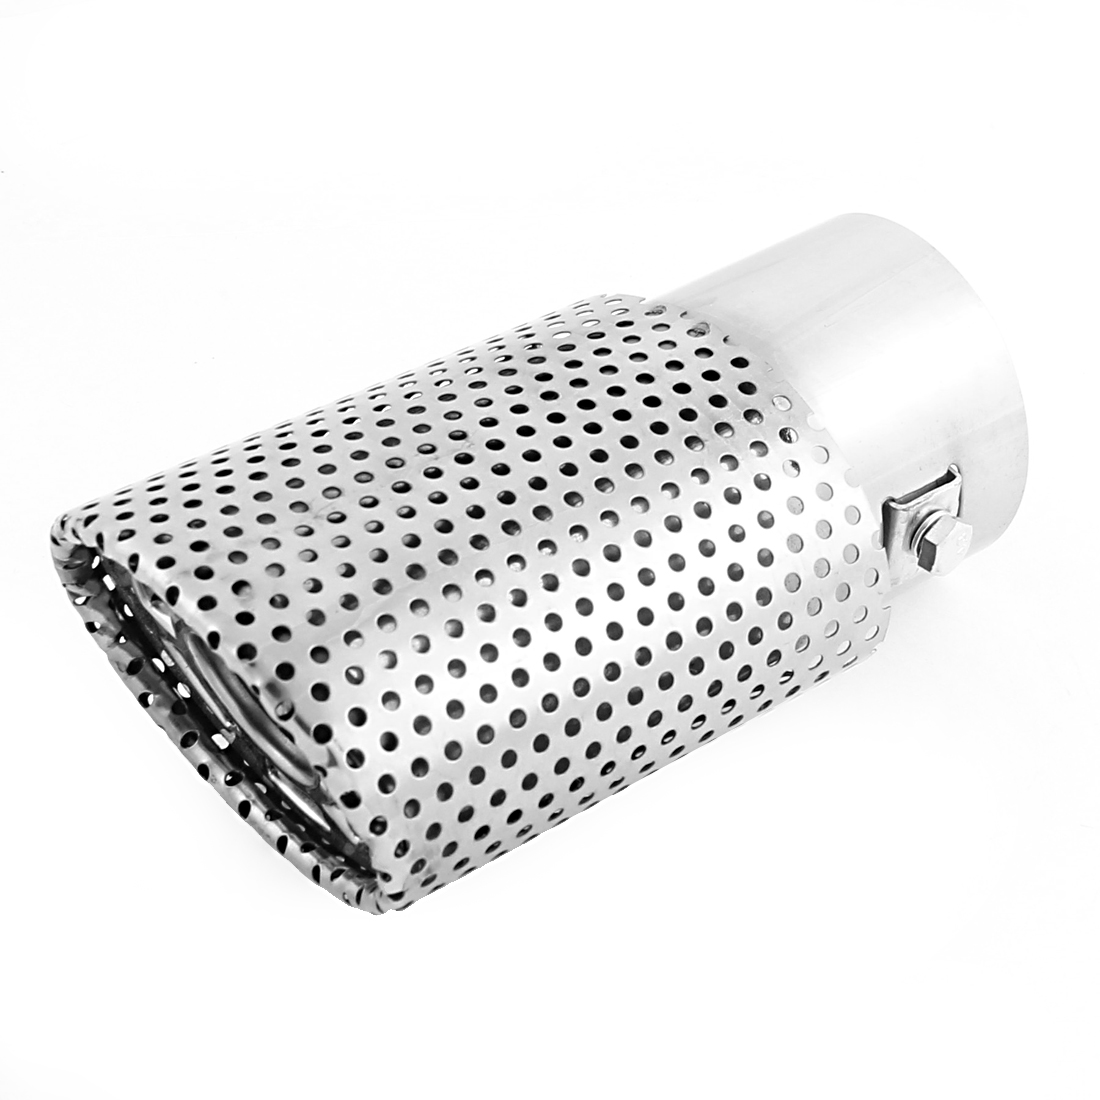 Oval Shape 60mm Inlet Diameter Car Exhaust Muffler Tail Pipe